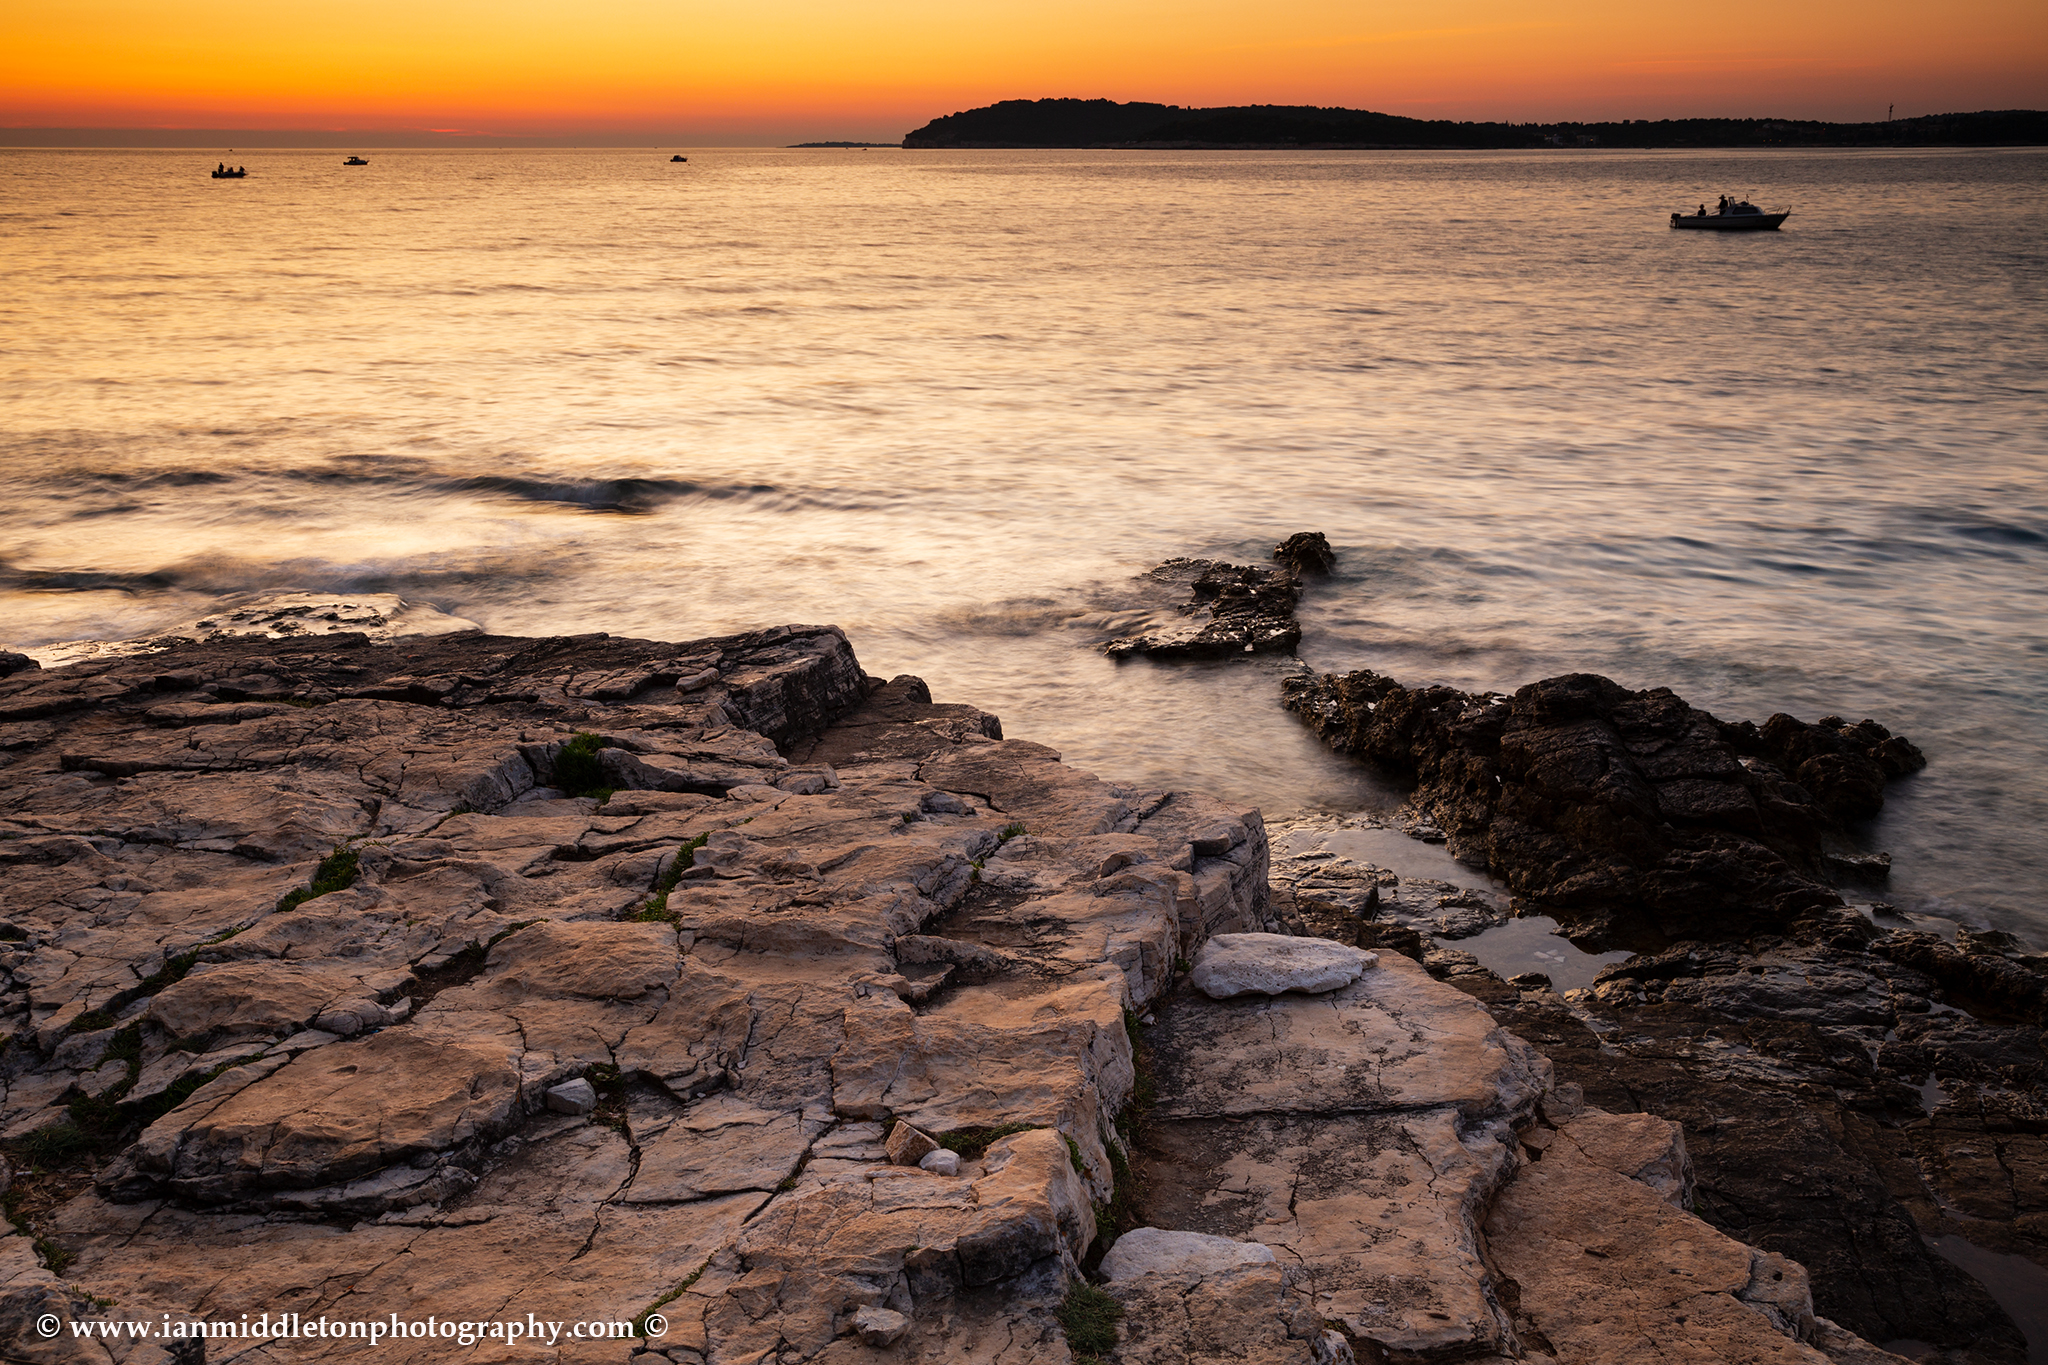 Verudela Beach, Pula, Croatia. The beautiful Istrian coastline at sunset.